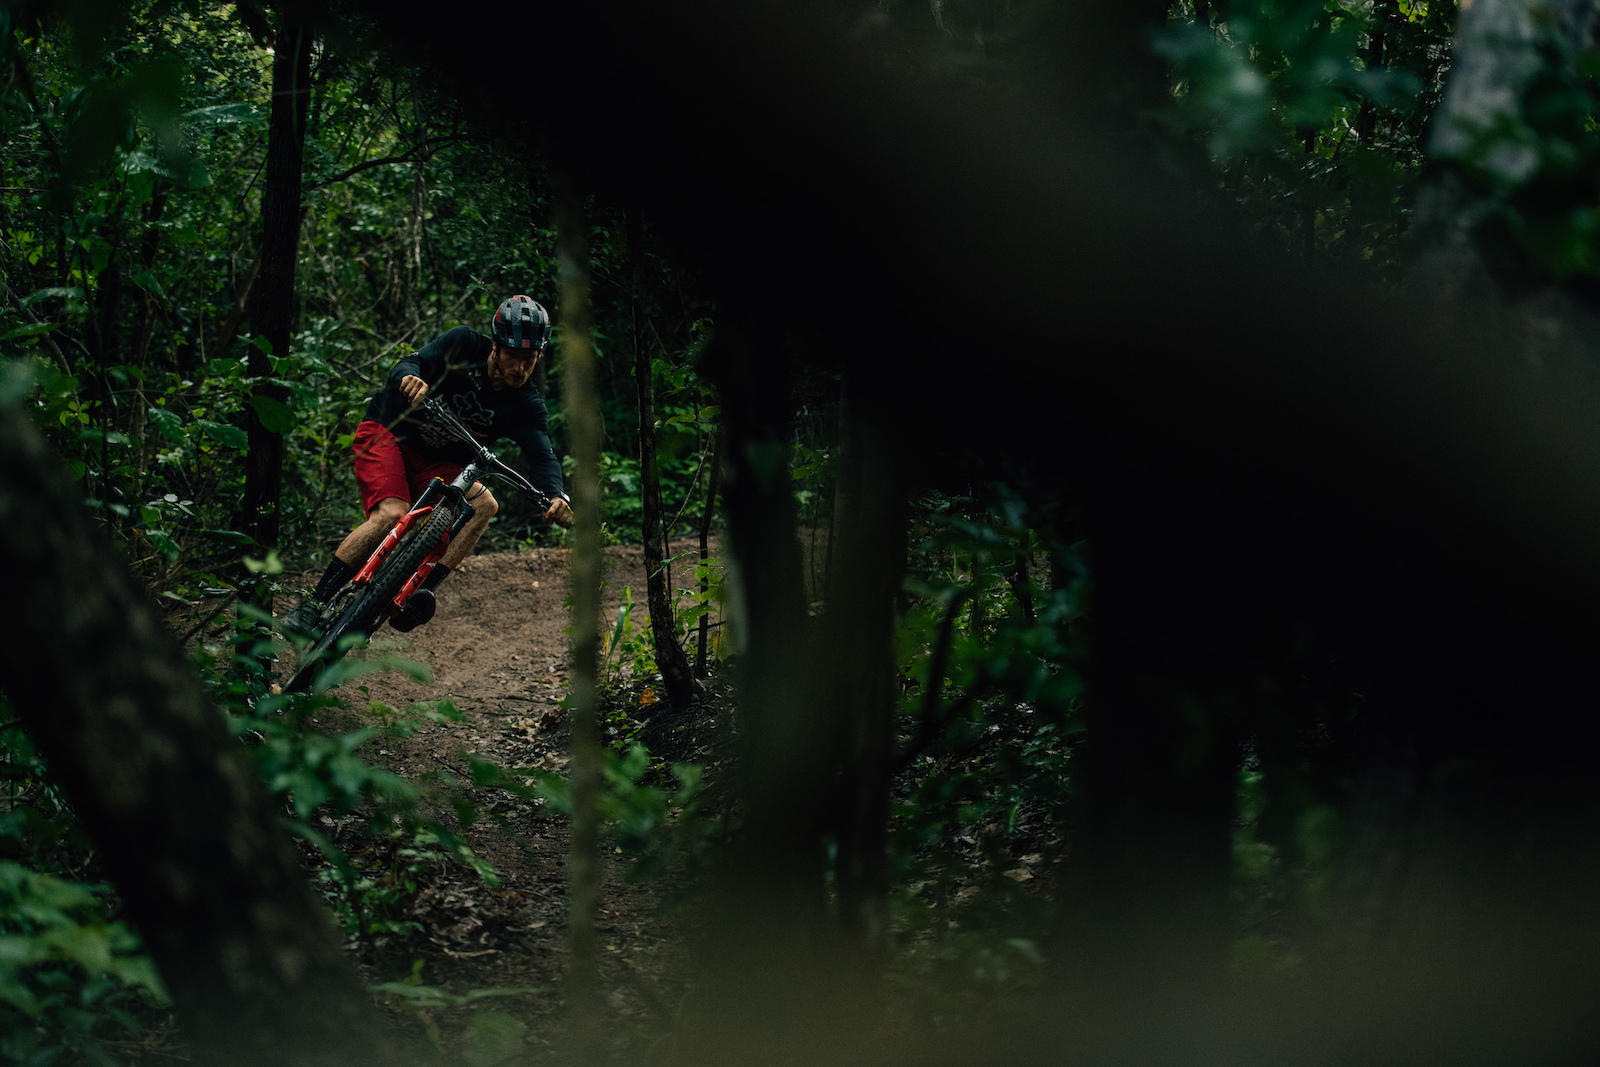 Bas rips through the forest like he was on rails.